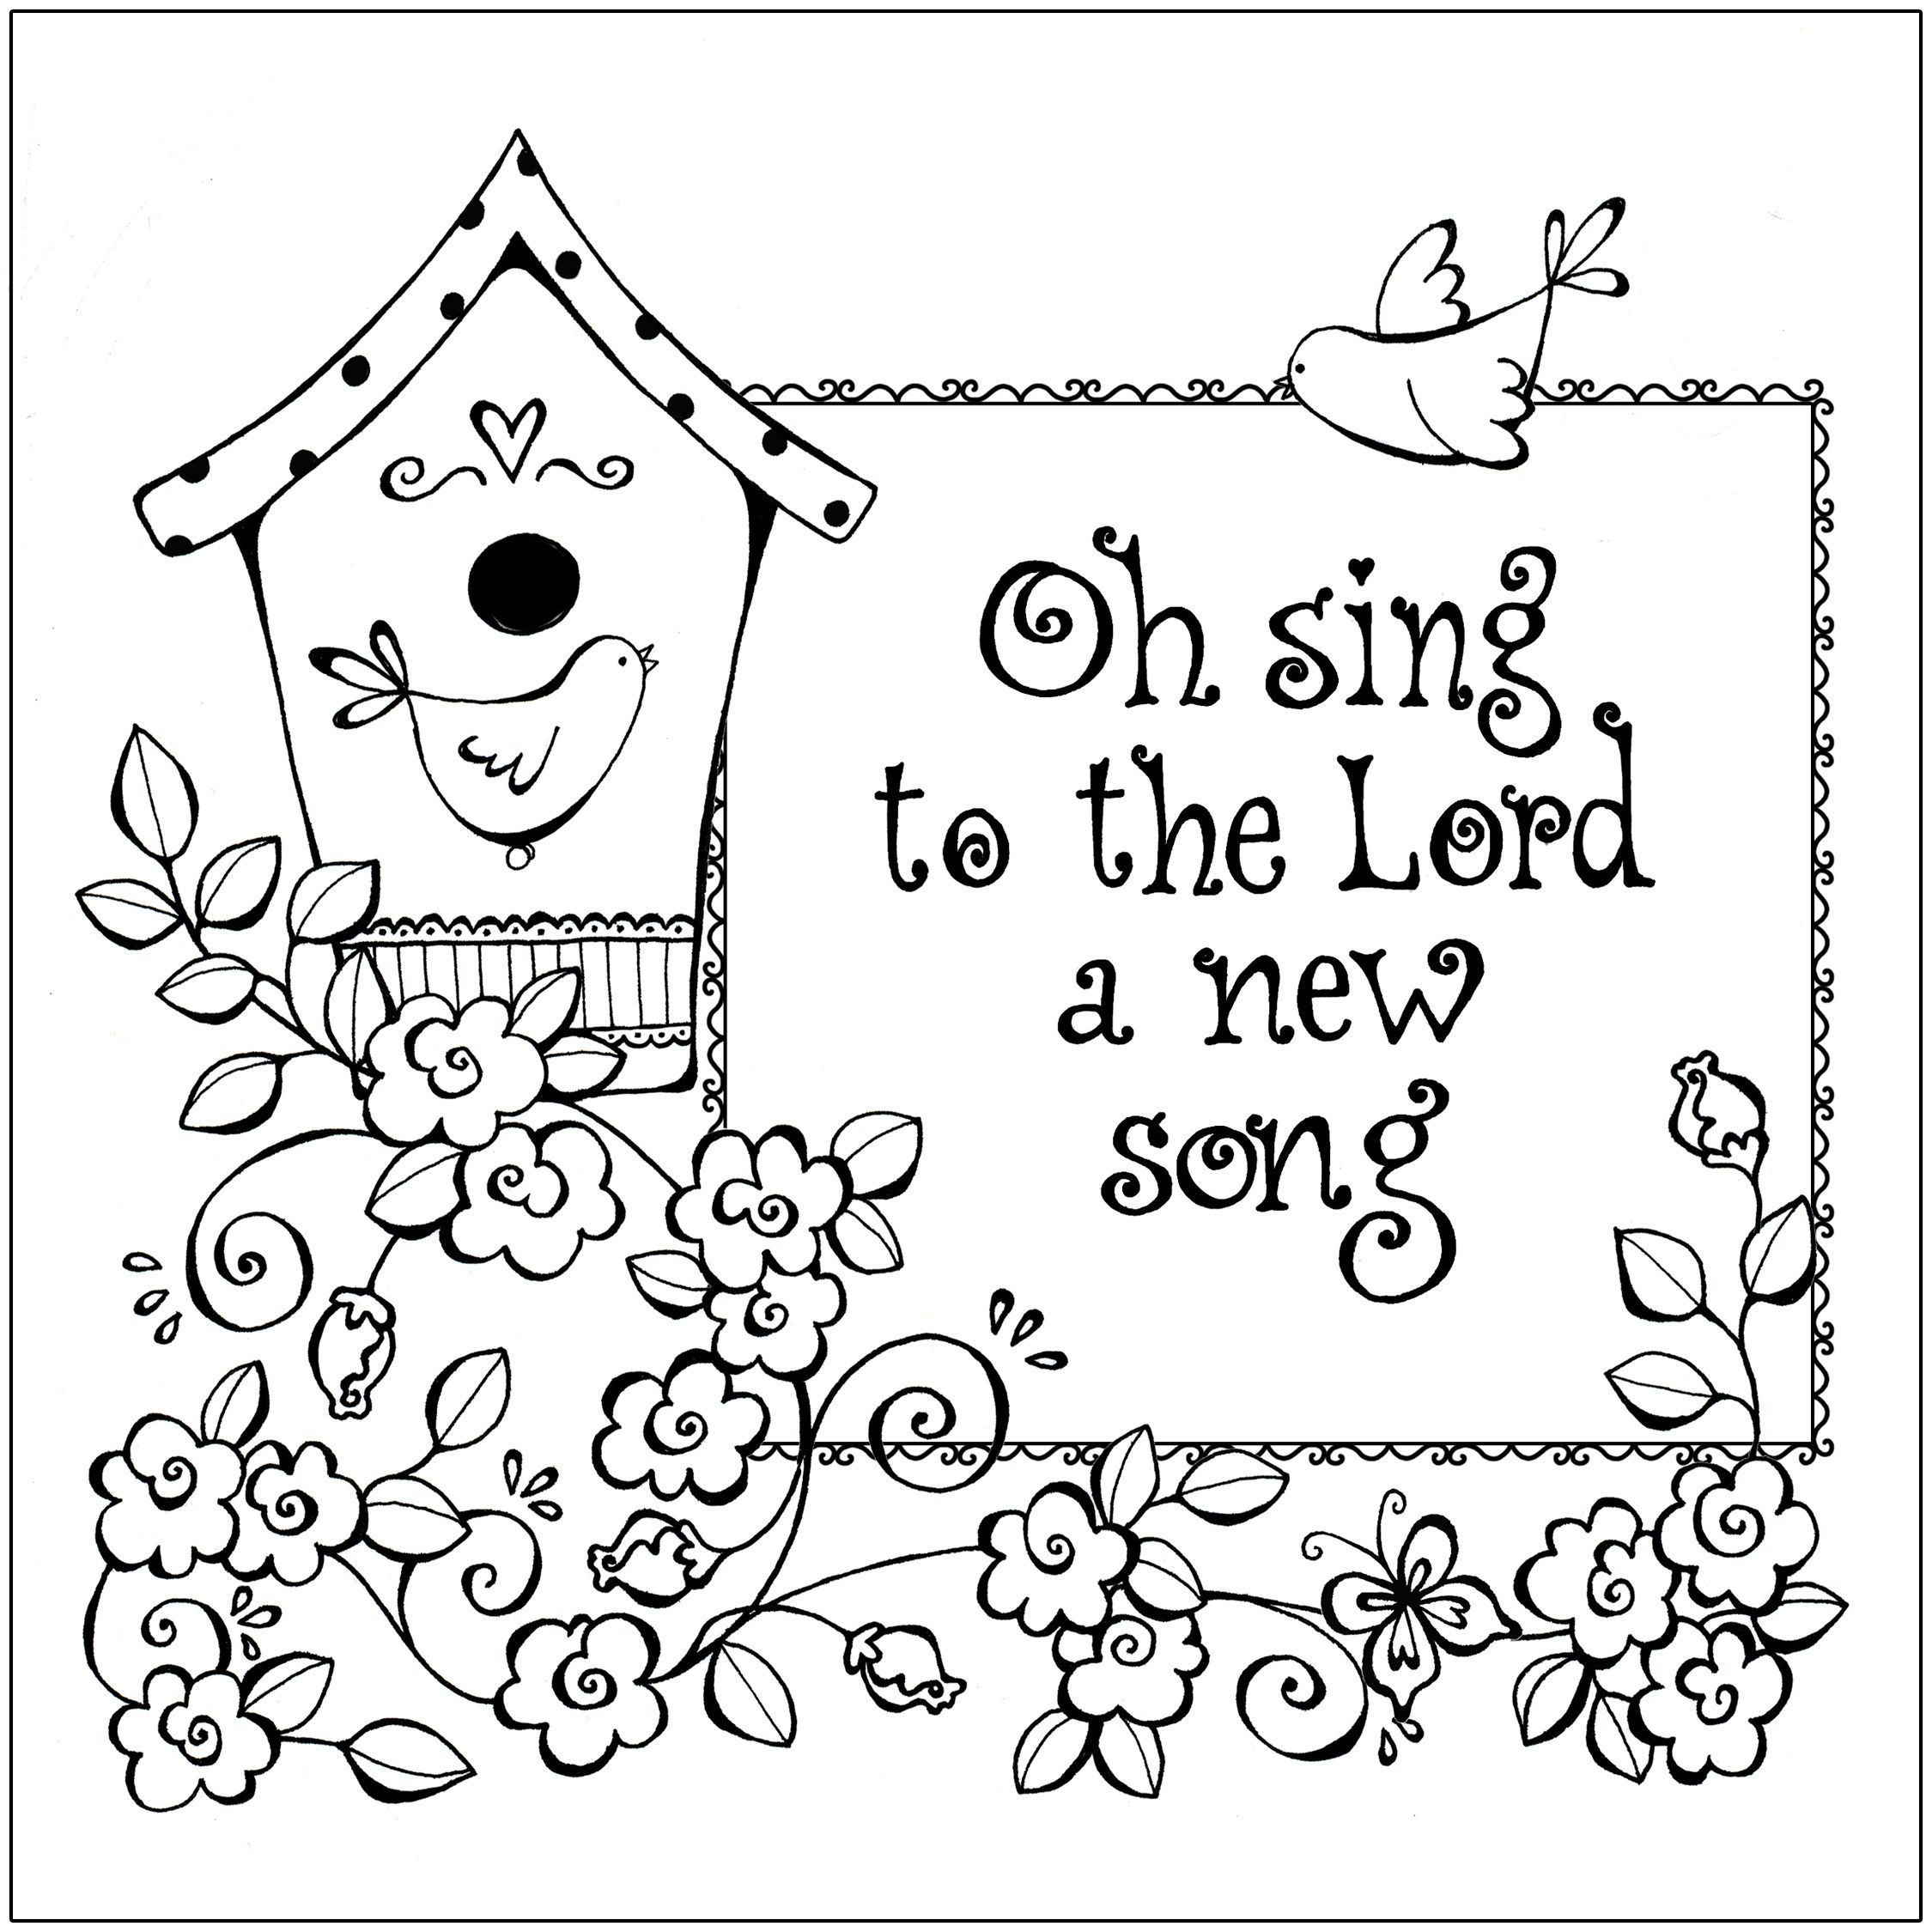 Karla S Korner Coloring Pages Sunday School Coloring Pages Bible Coloring Pages Summer Coloring Pages